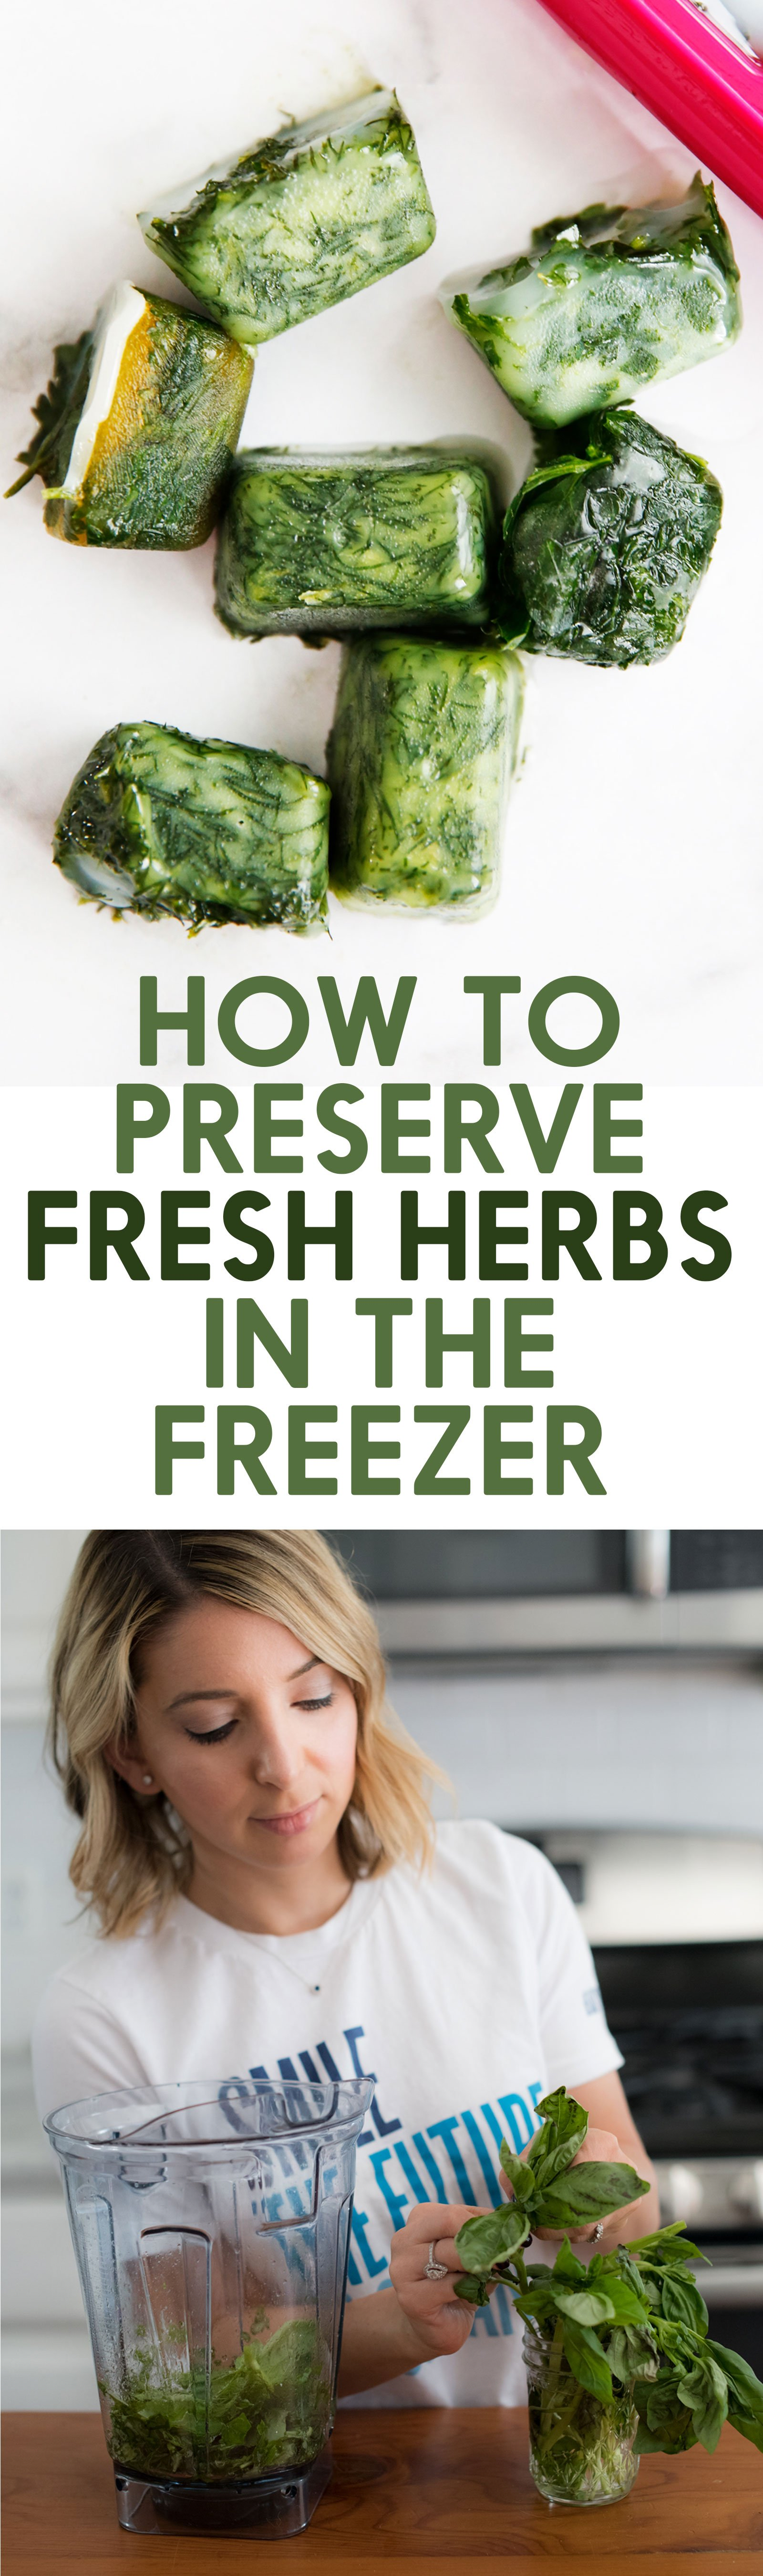 How to Preserve Fresh Herbs in the Freezer